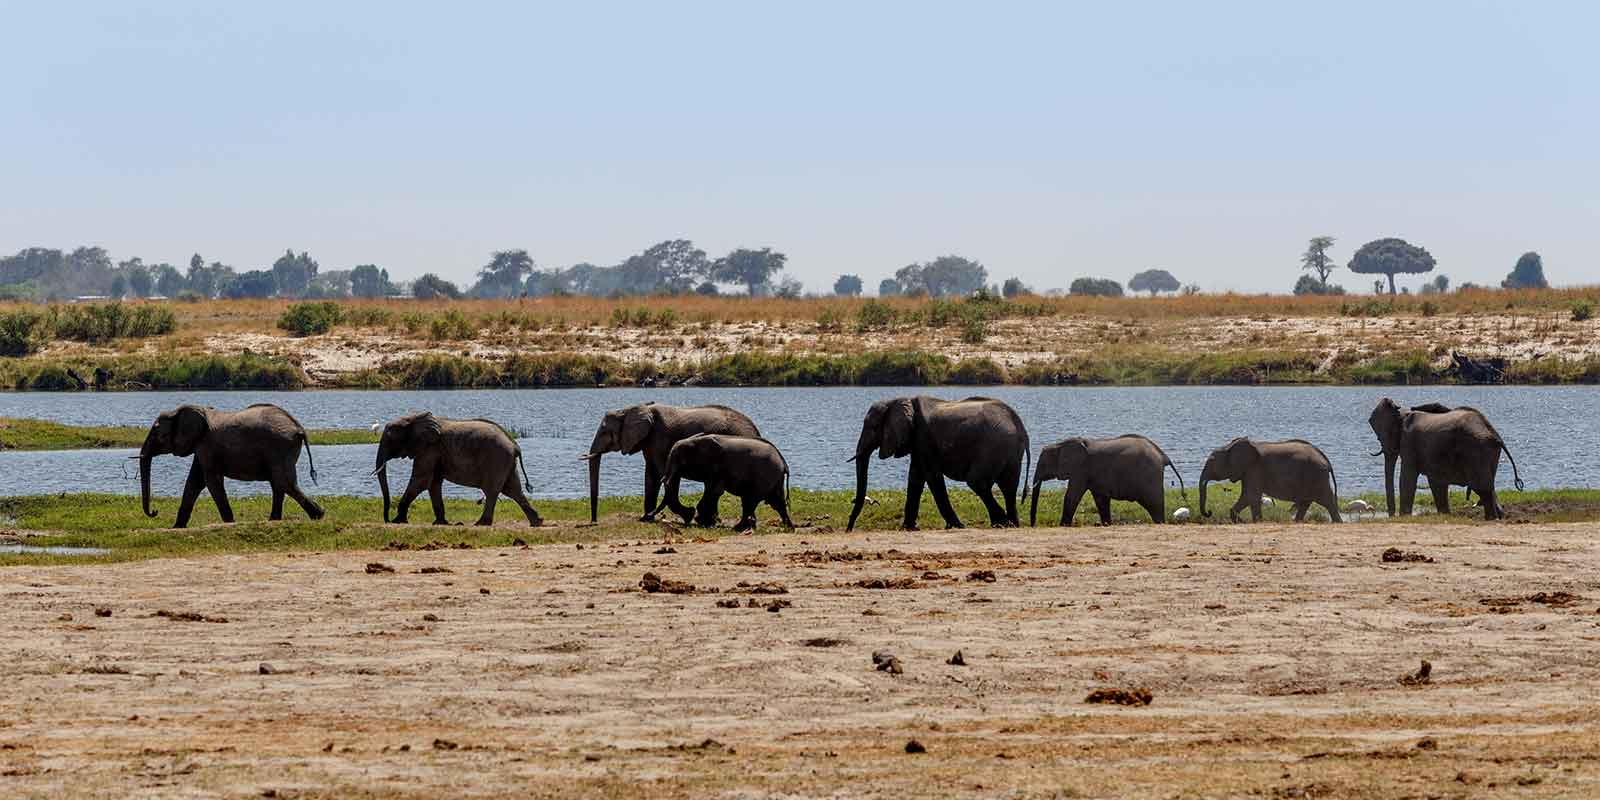 Family of elephants walking next to river in Botswana